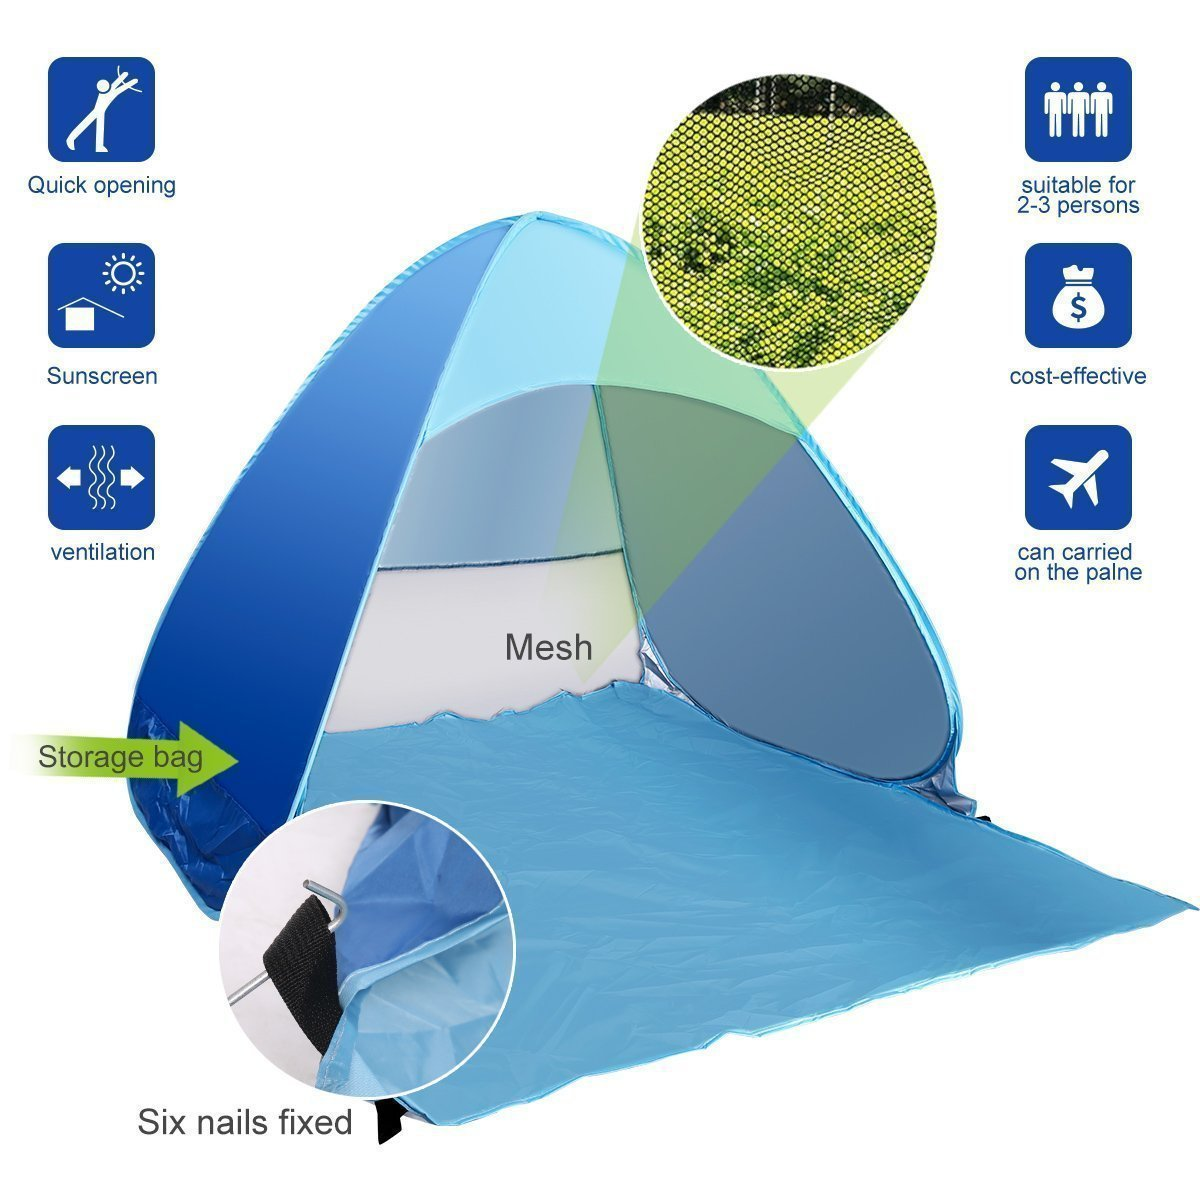 SZJH Popup Beach Shelter with UV protection 50+ UPF